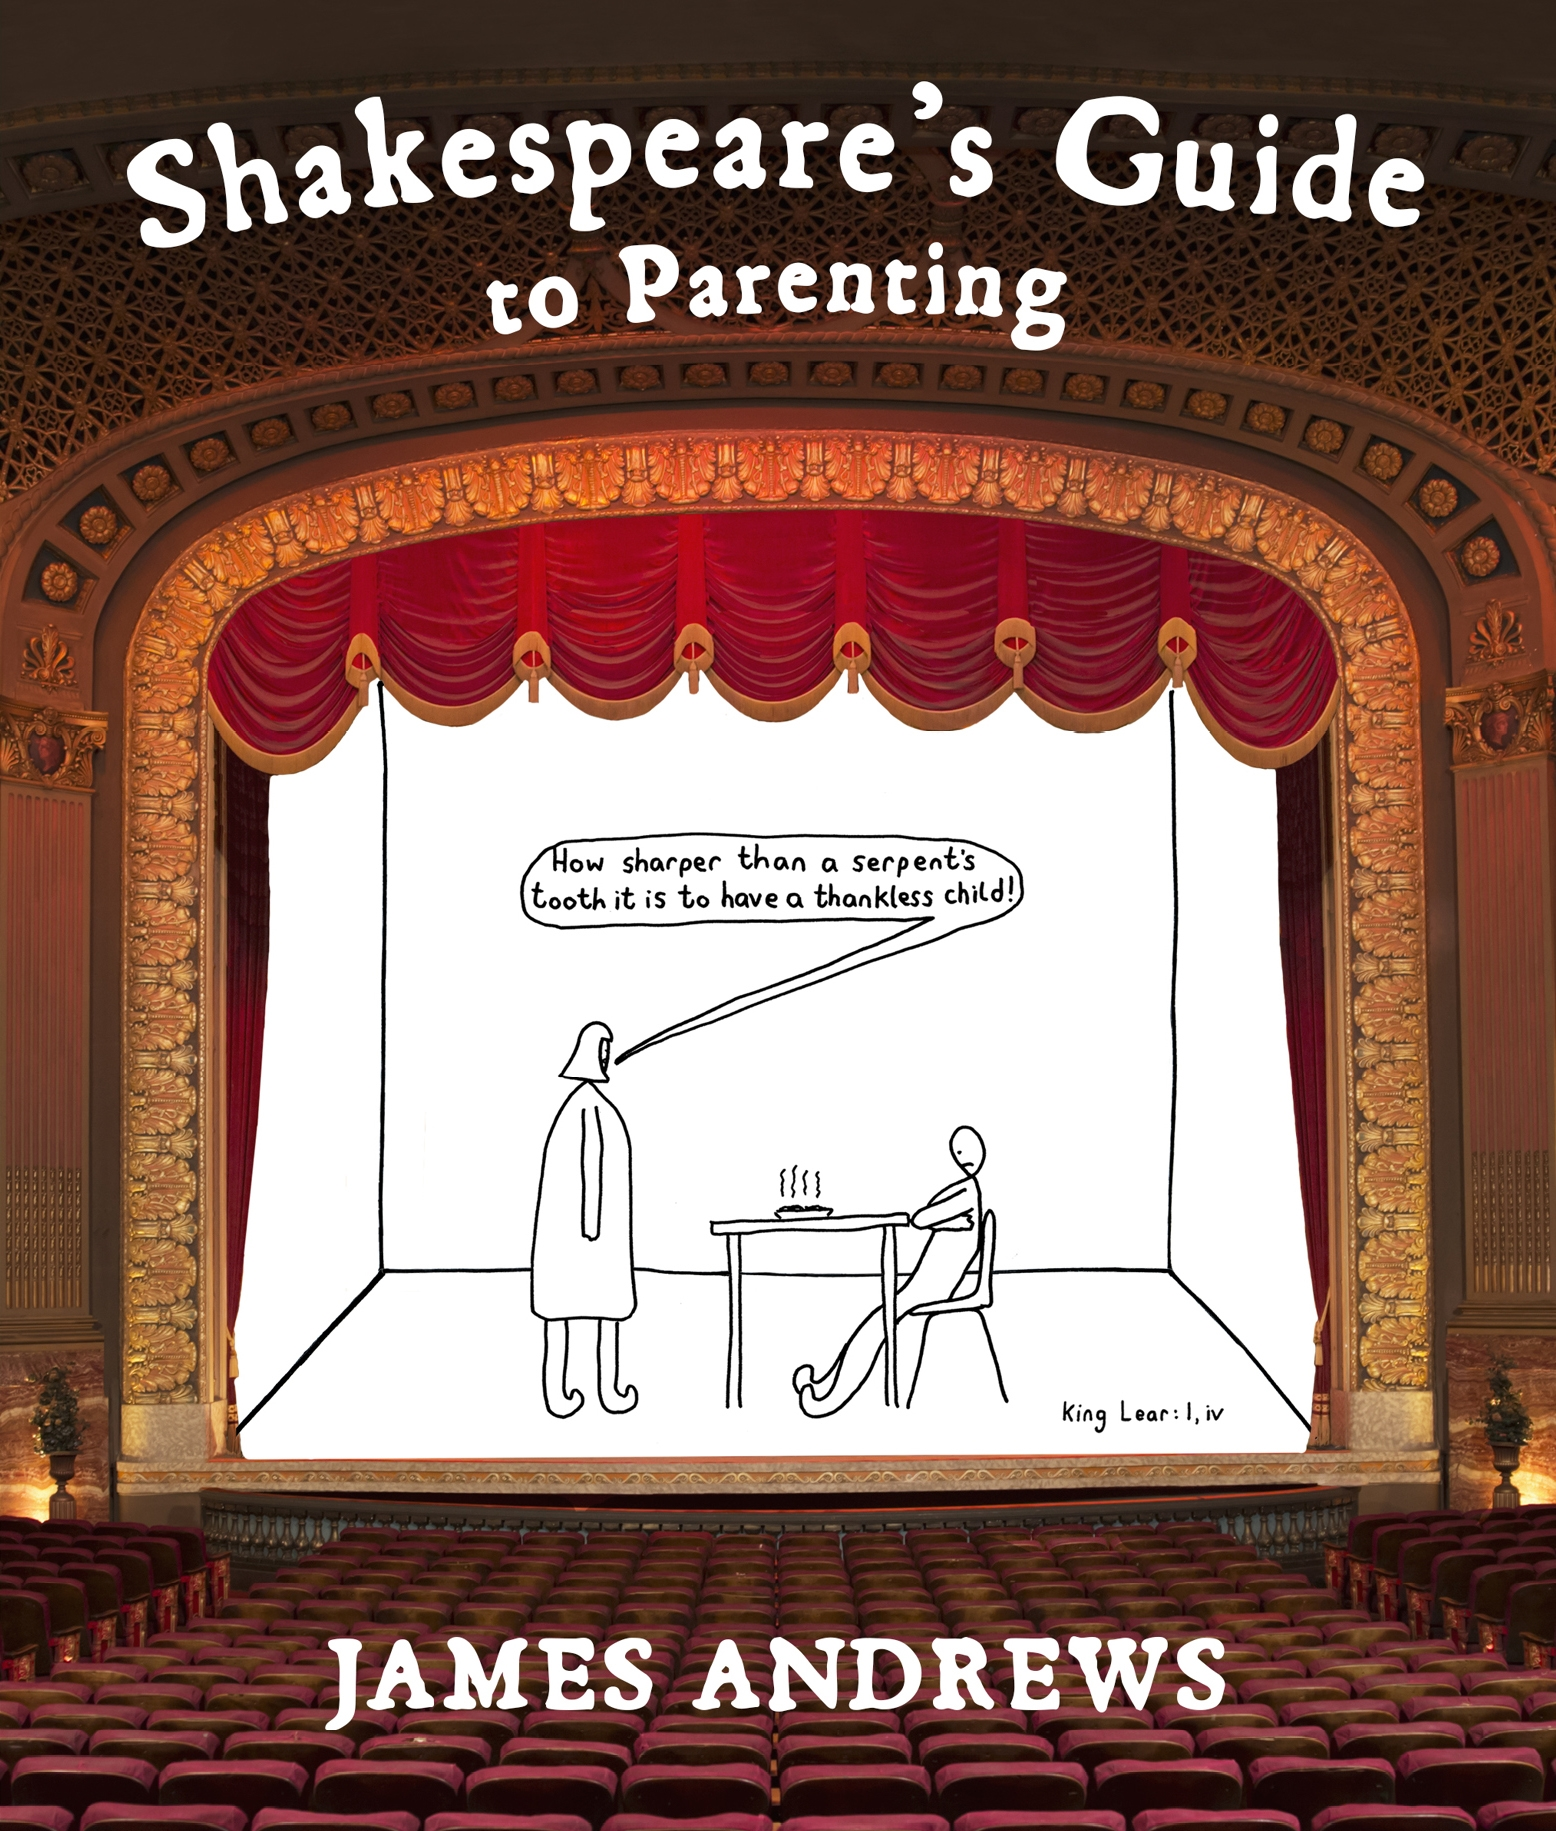 Shakespeare's Guide to Parenting by James Andrews - Penguin Books